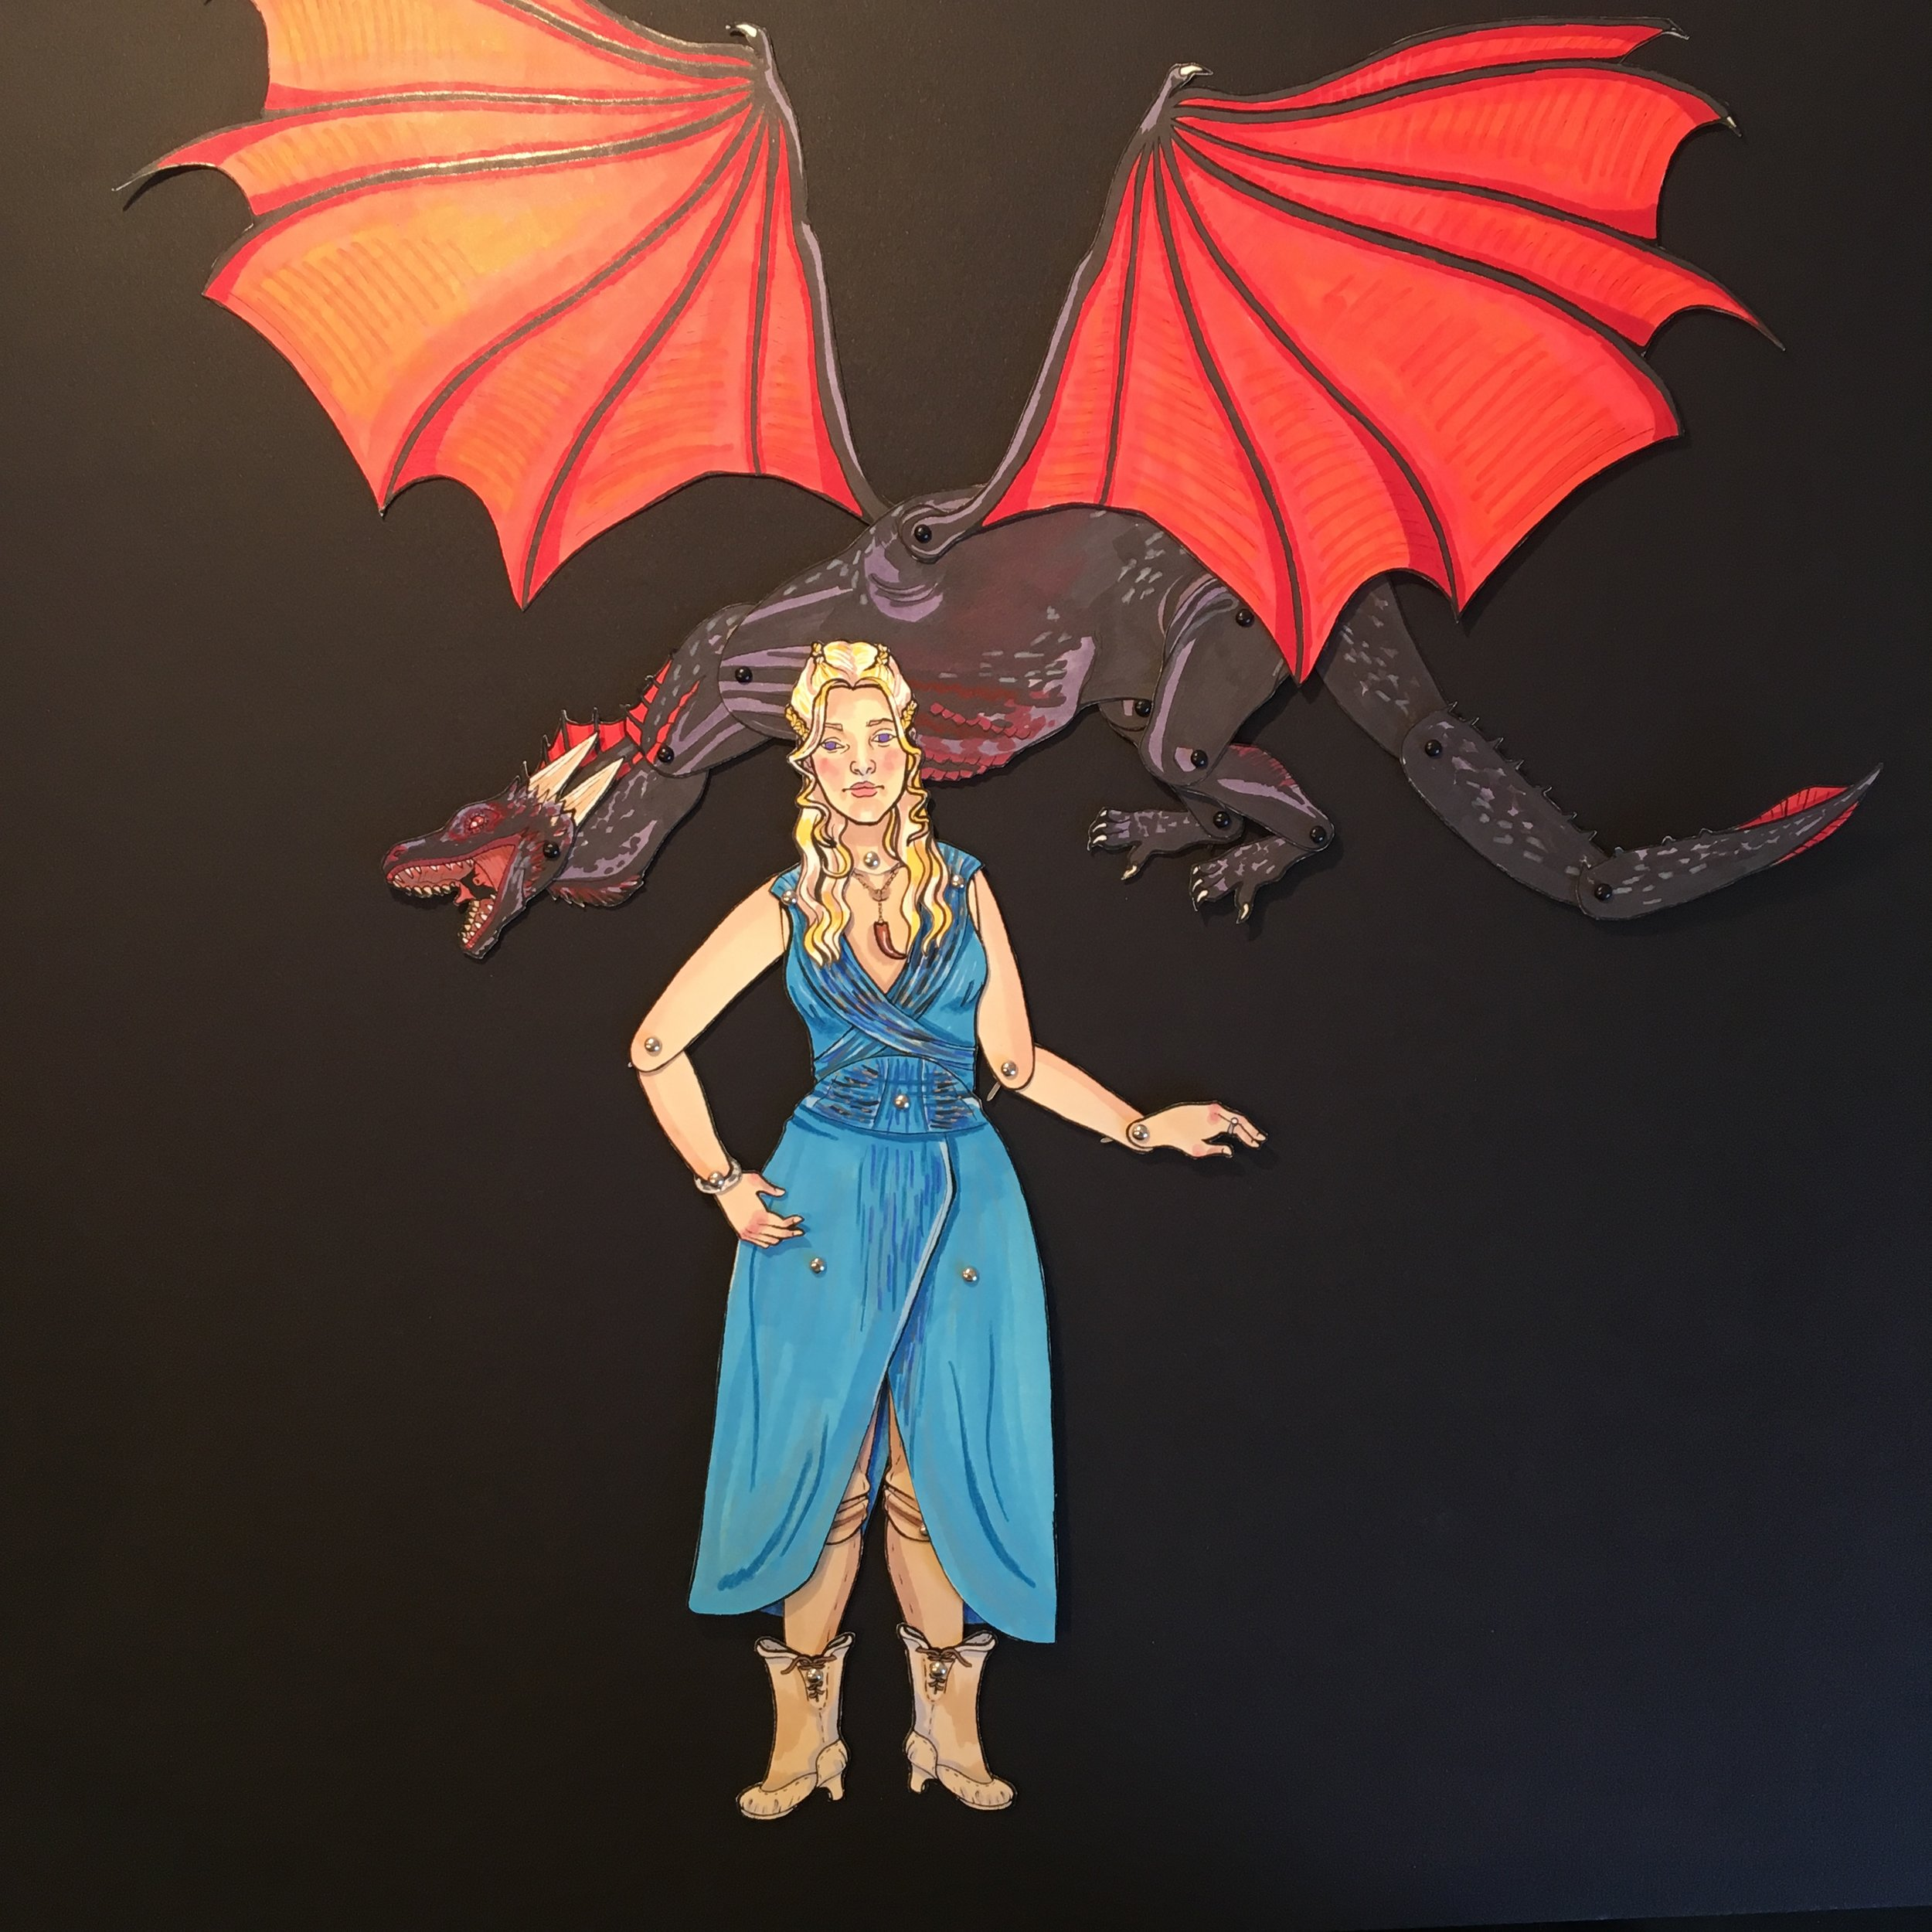 Danaerys Breaker of Chains + Drogon